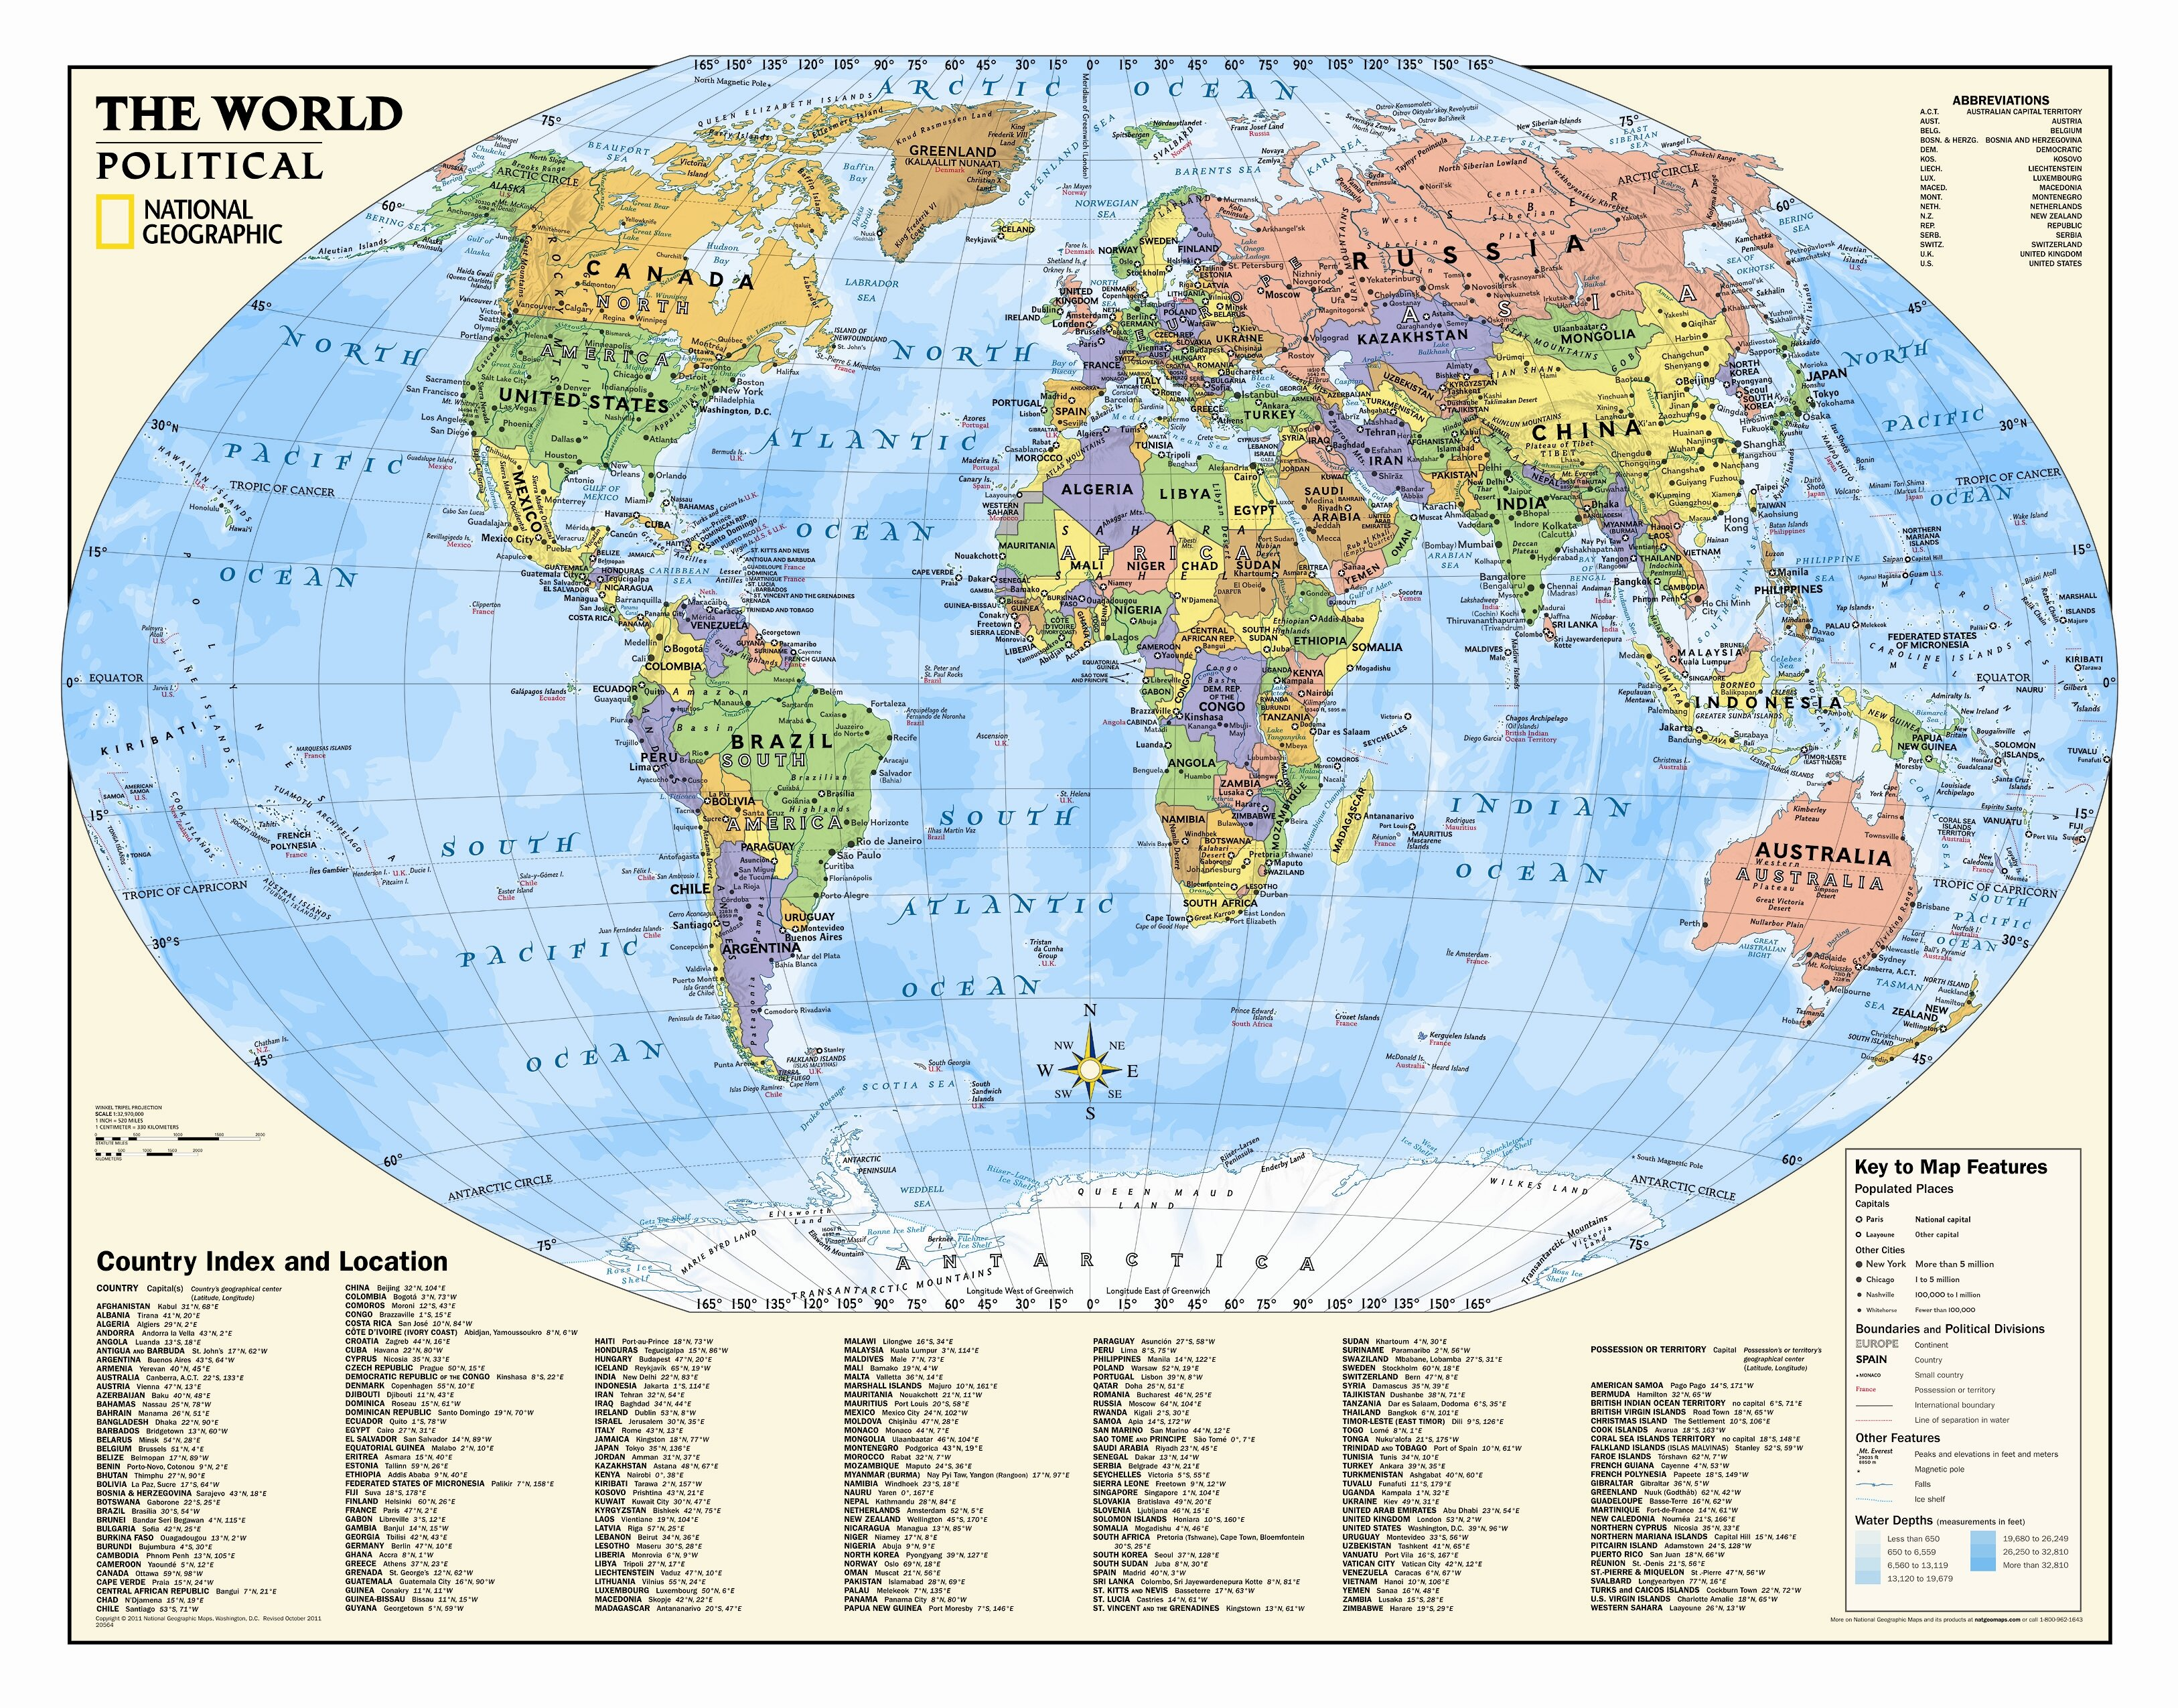 I Need A Map Of The World.National Geographic Maps Kids Political World Wall Map Grades 4 12